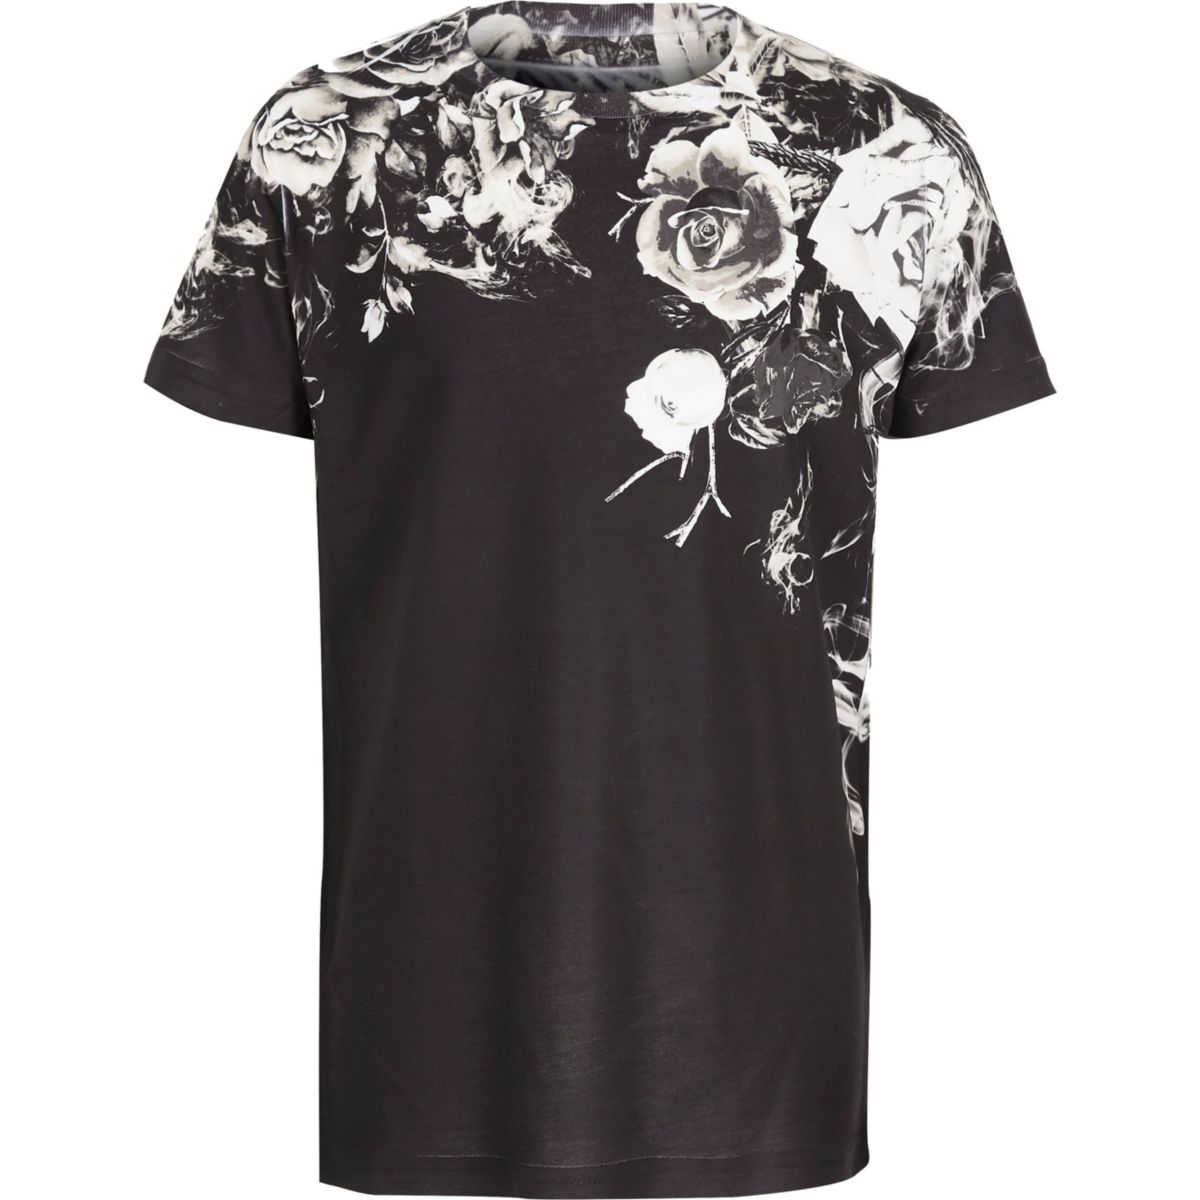 Boys black floral fade print t shirt t shirts t shirts for Black floral print shirt